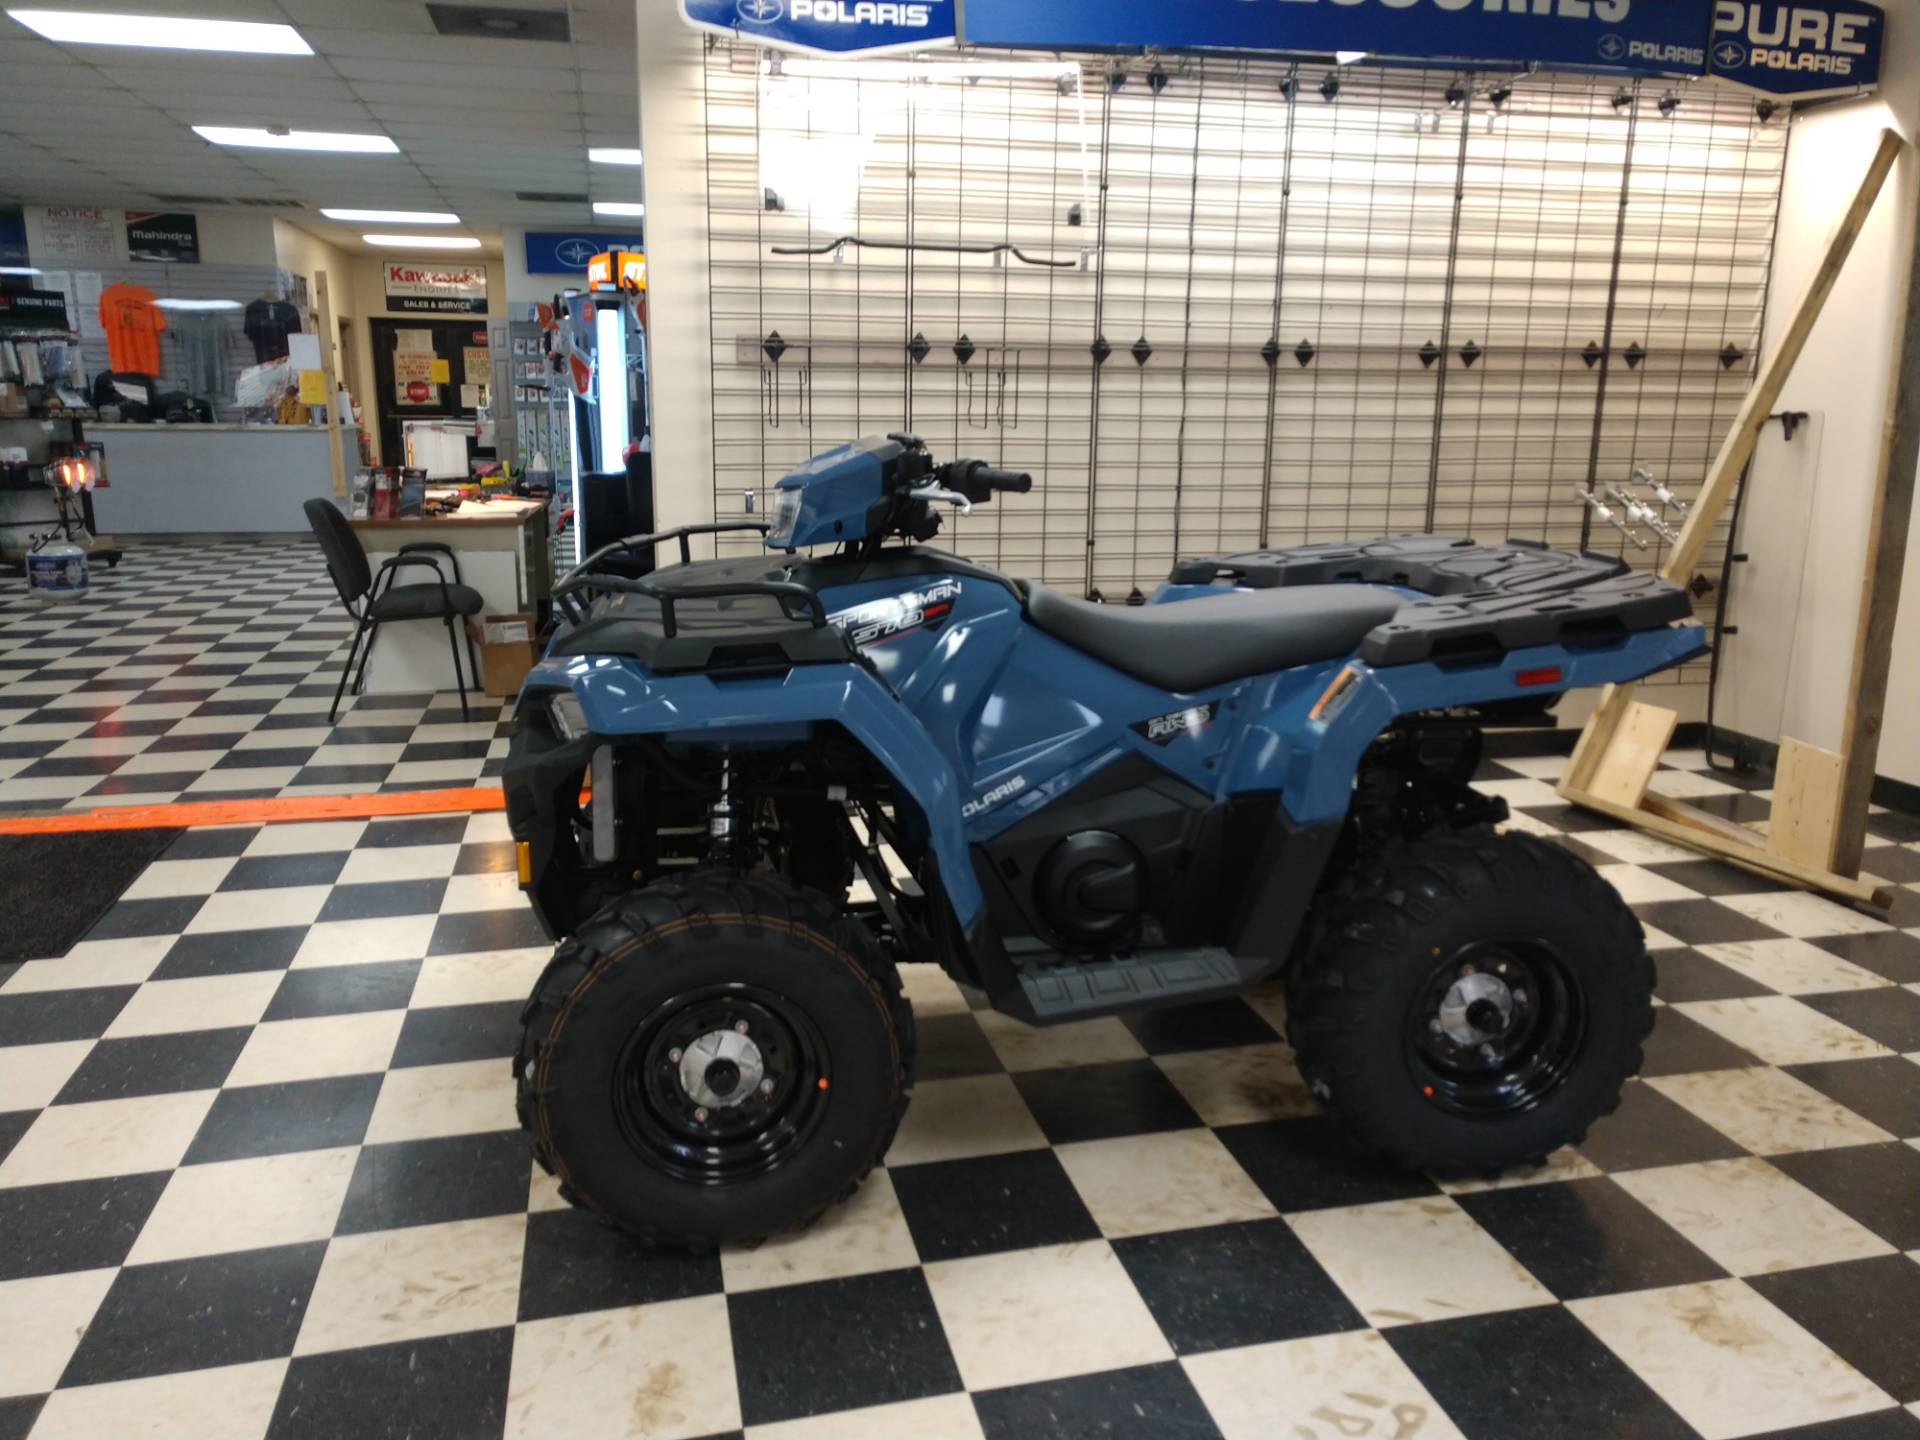 2021 Polaris Sportsman 570 in Pound, Virginia - Photo 2